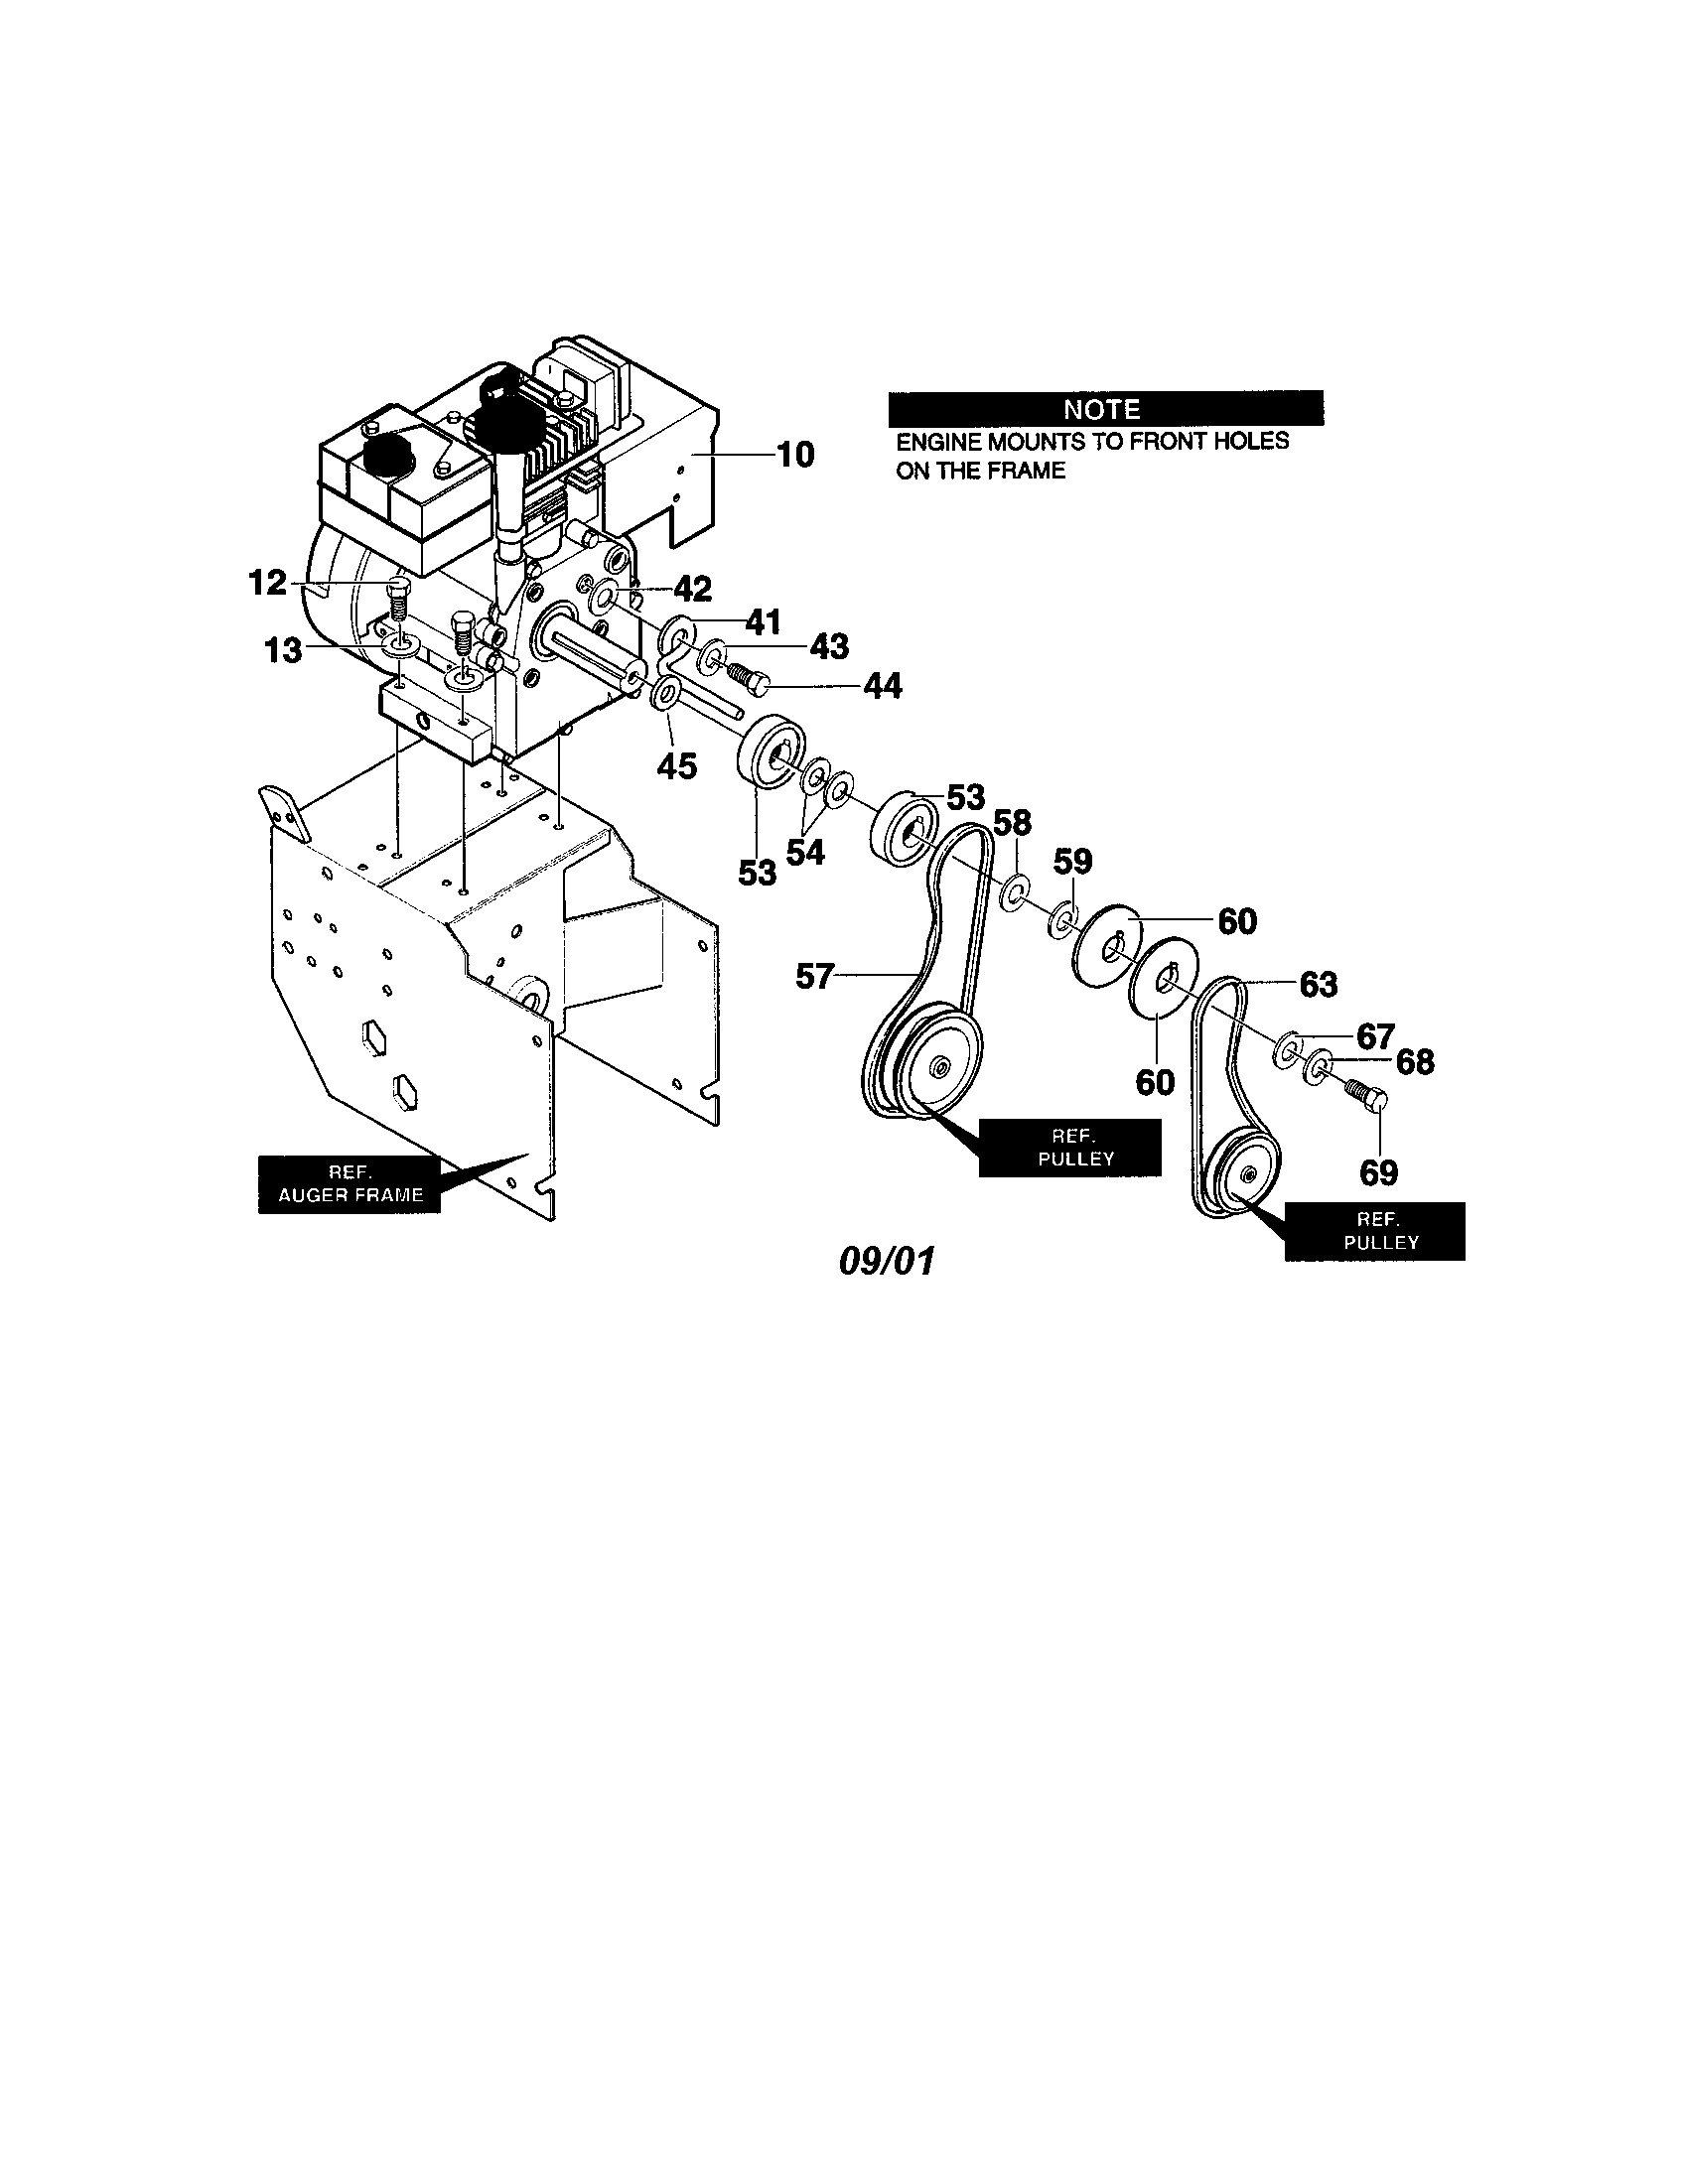 CRAFTSMAN OwnerS Manual-Snow Blower Electric starter Parts